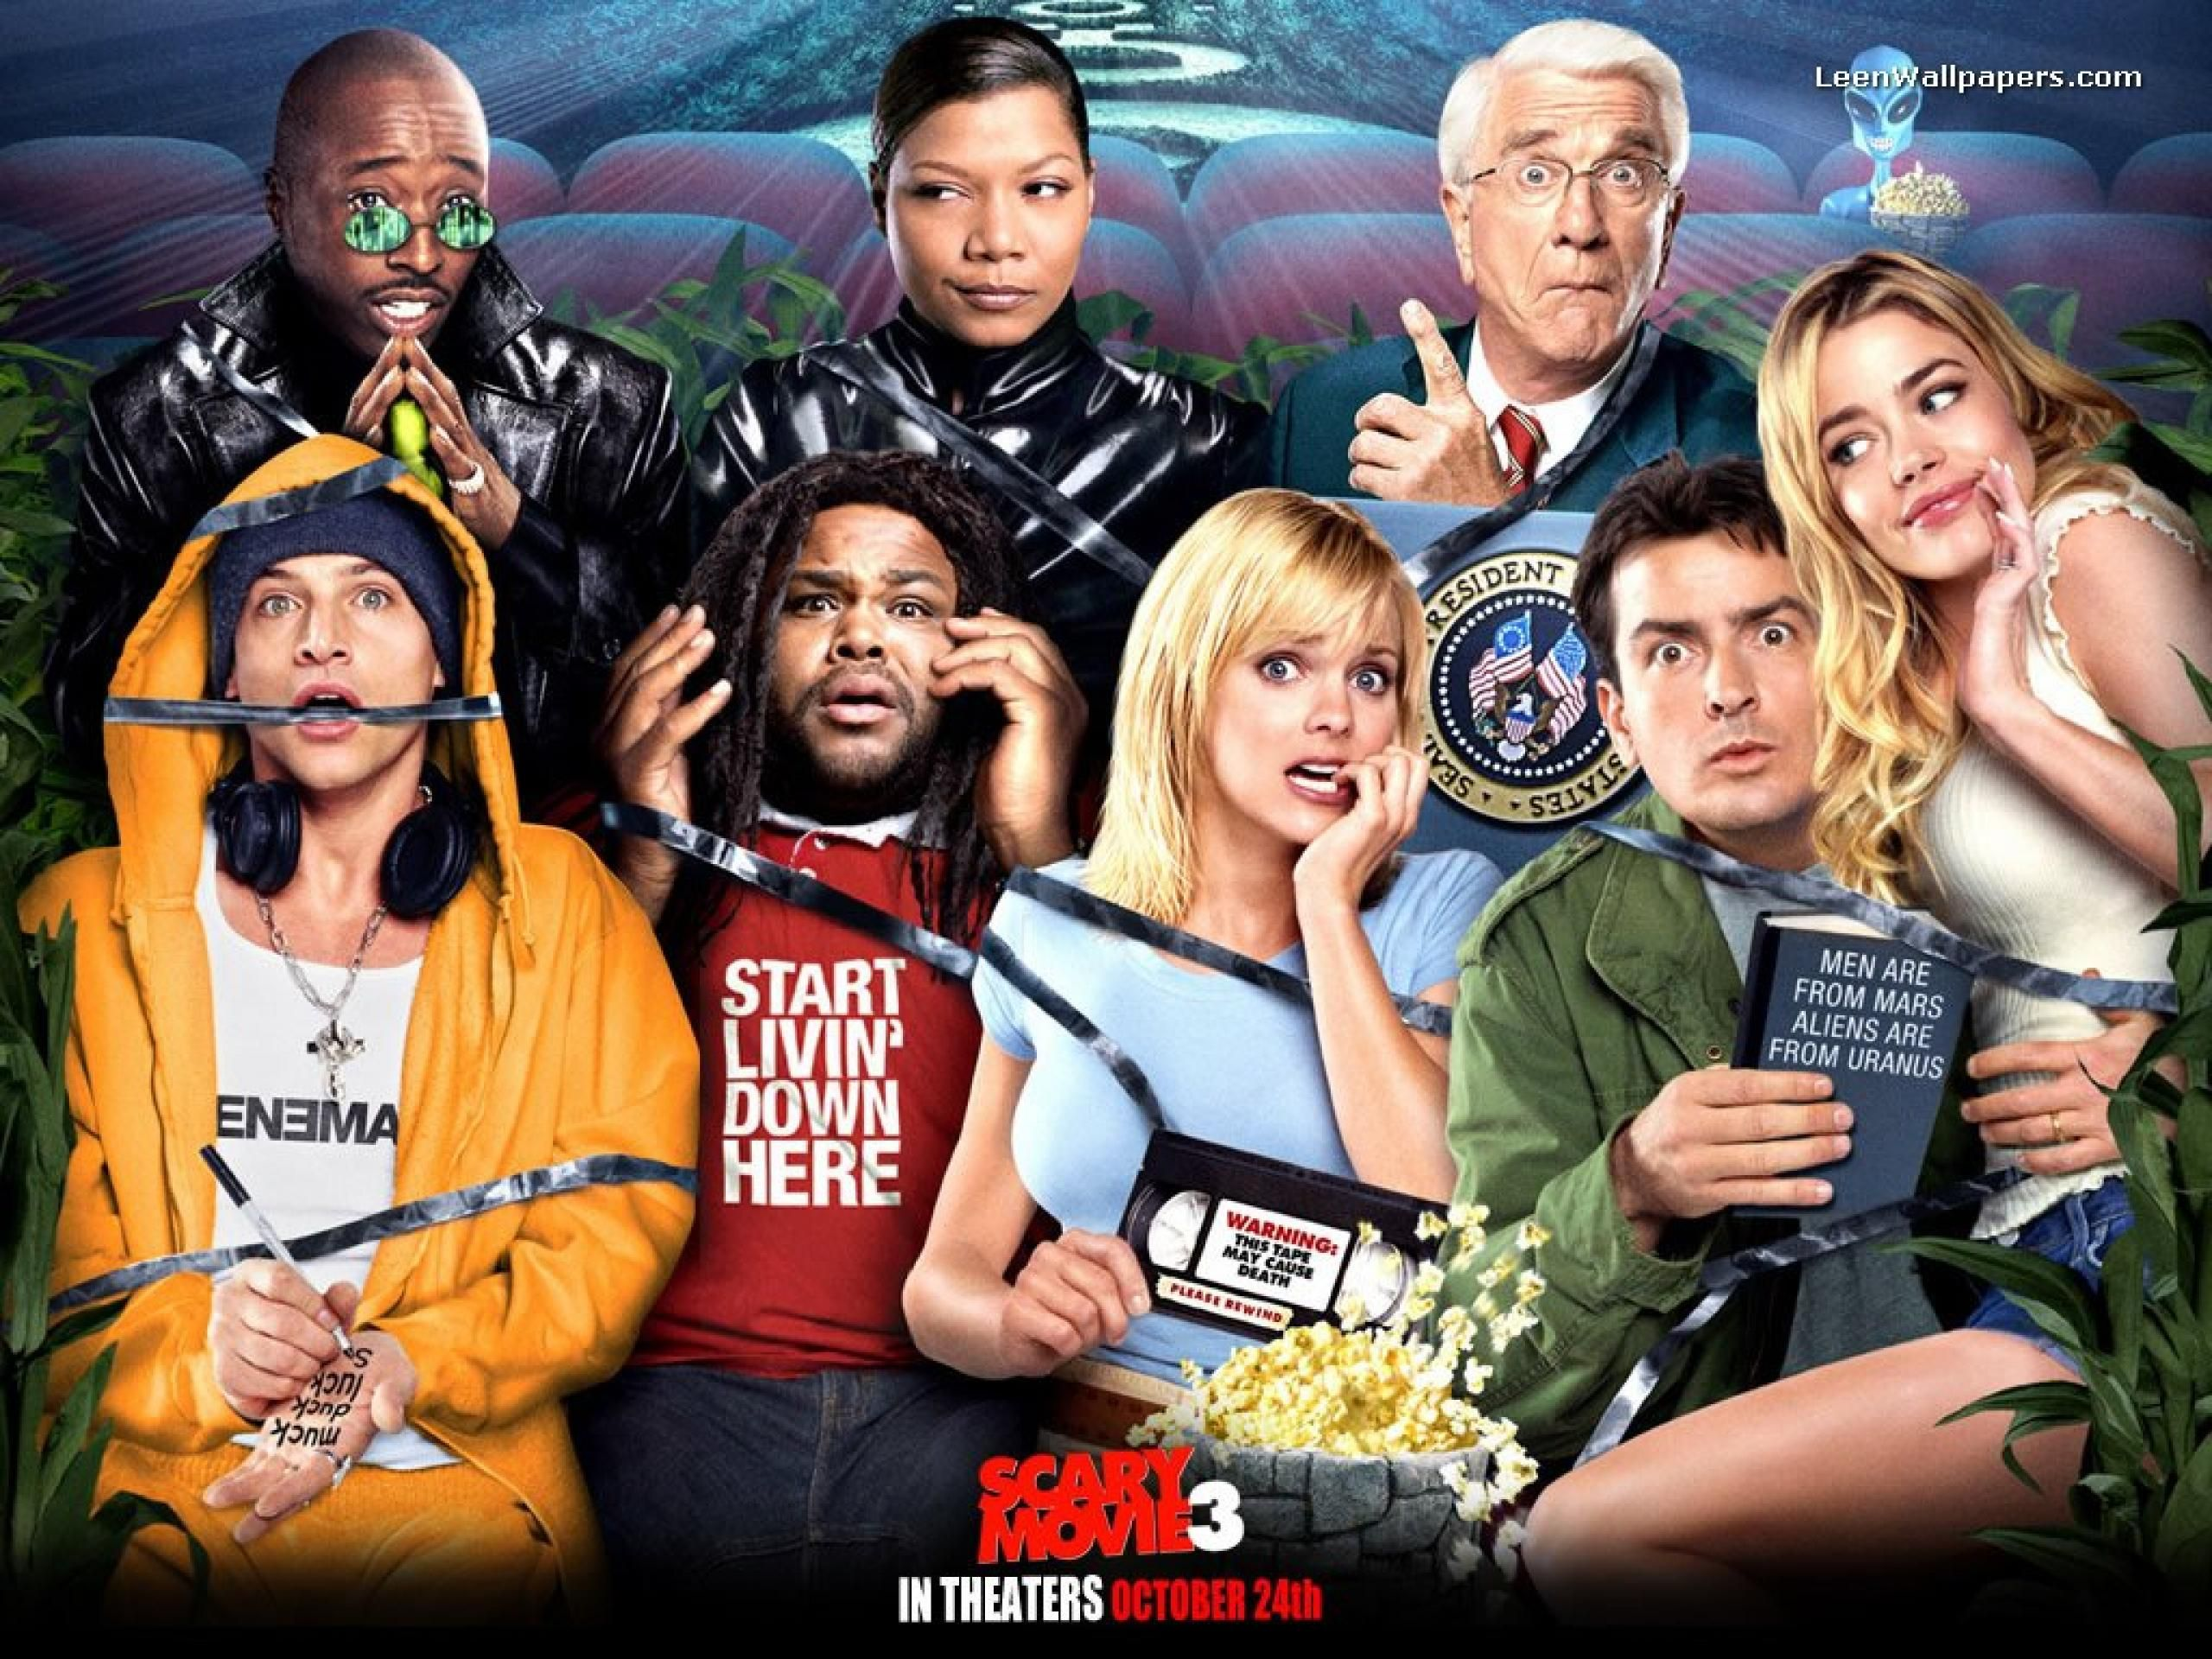 Thee Best Ever Movies Scary Movie 3 Scary Movie 2 Comedy Movies